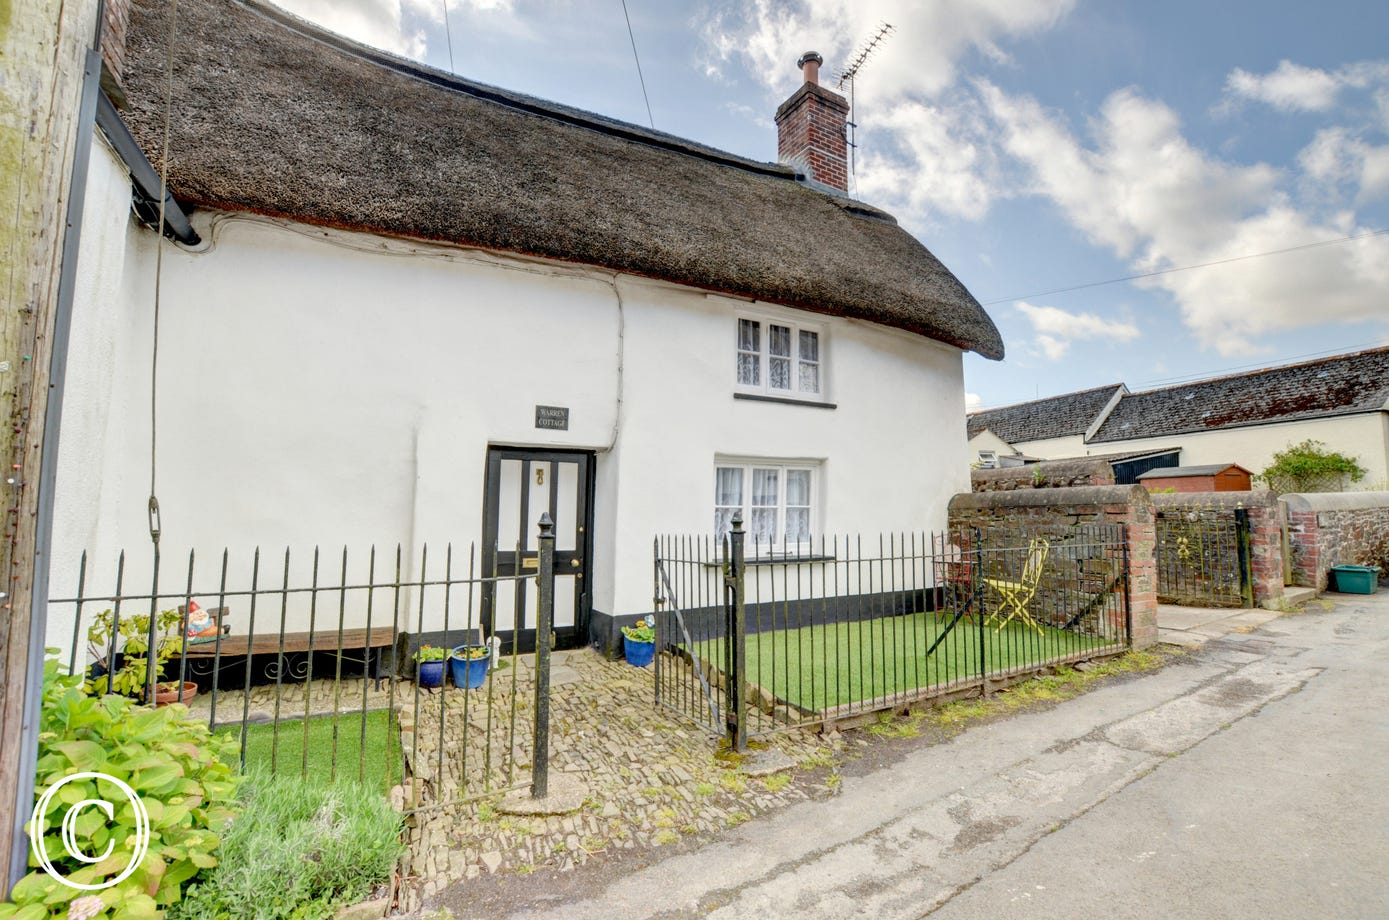 This beautiful thatched cottage is set in the heart of the village of Dolton, in rural mid Devon